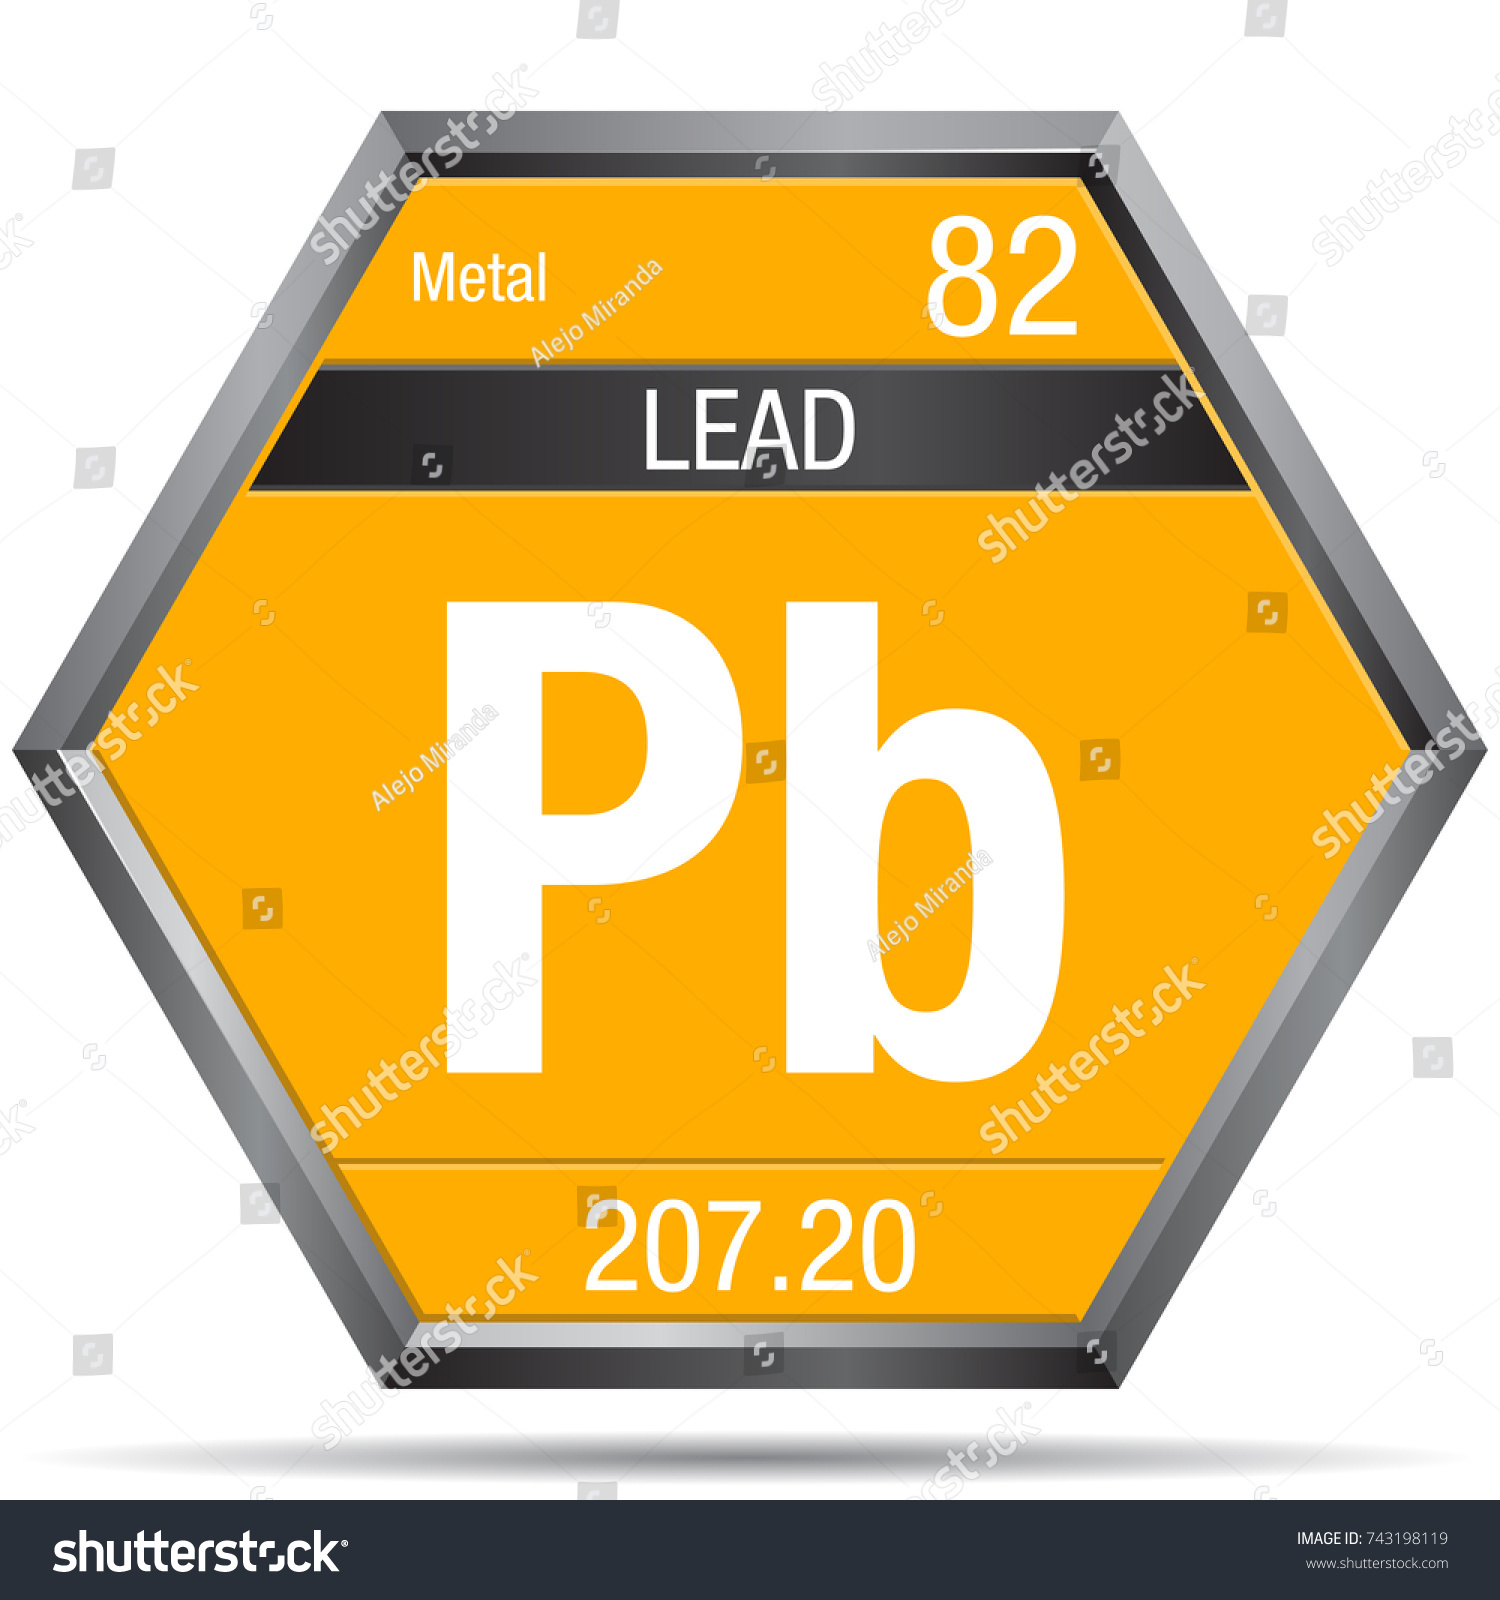 Periodic table symbol for lead images symbol and sign ideas lead symbol form hexagon metallic frame stock vector 743198119 lead symbol in the form of a urtaz Gallery